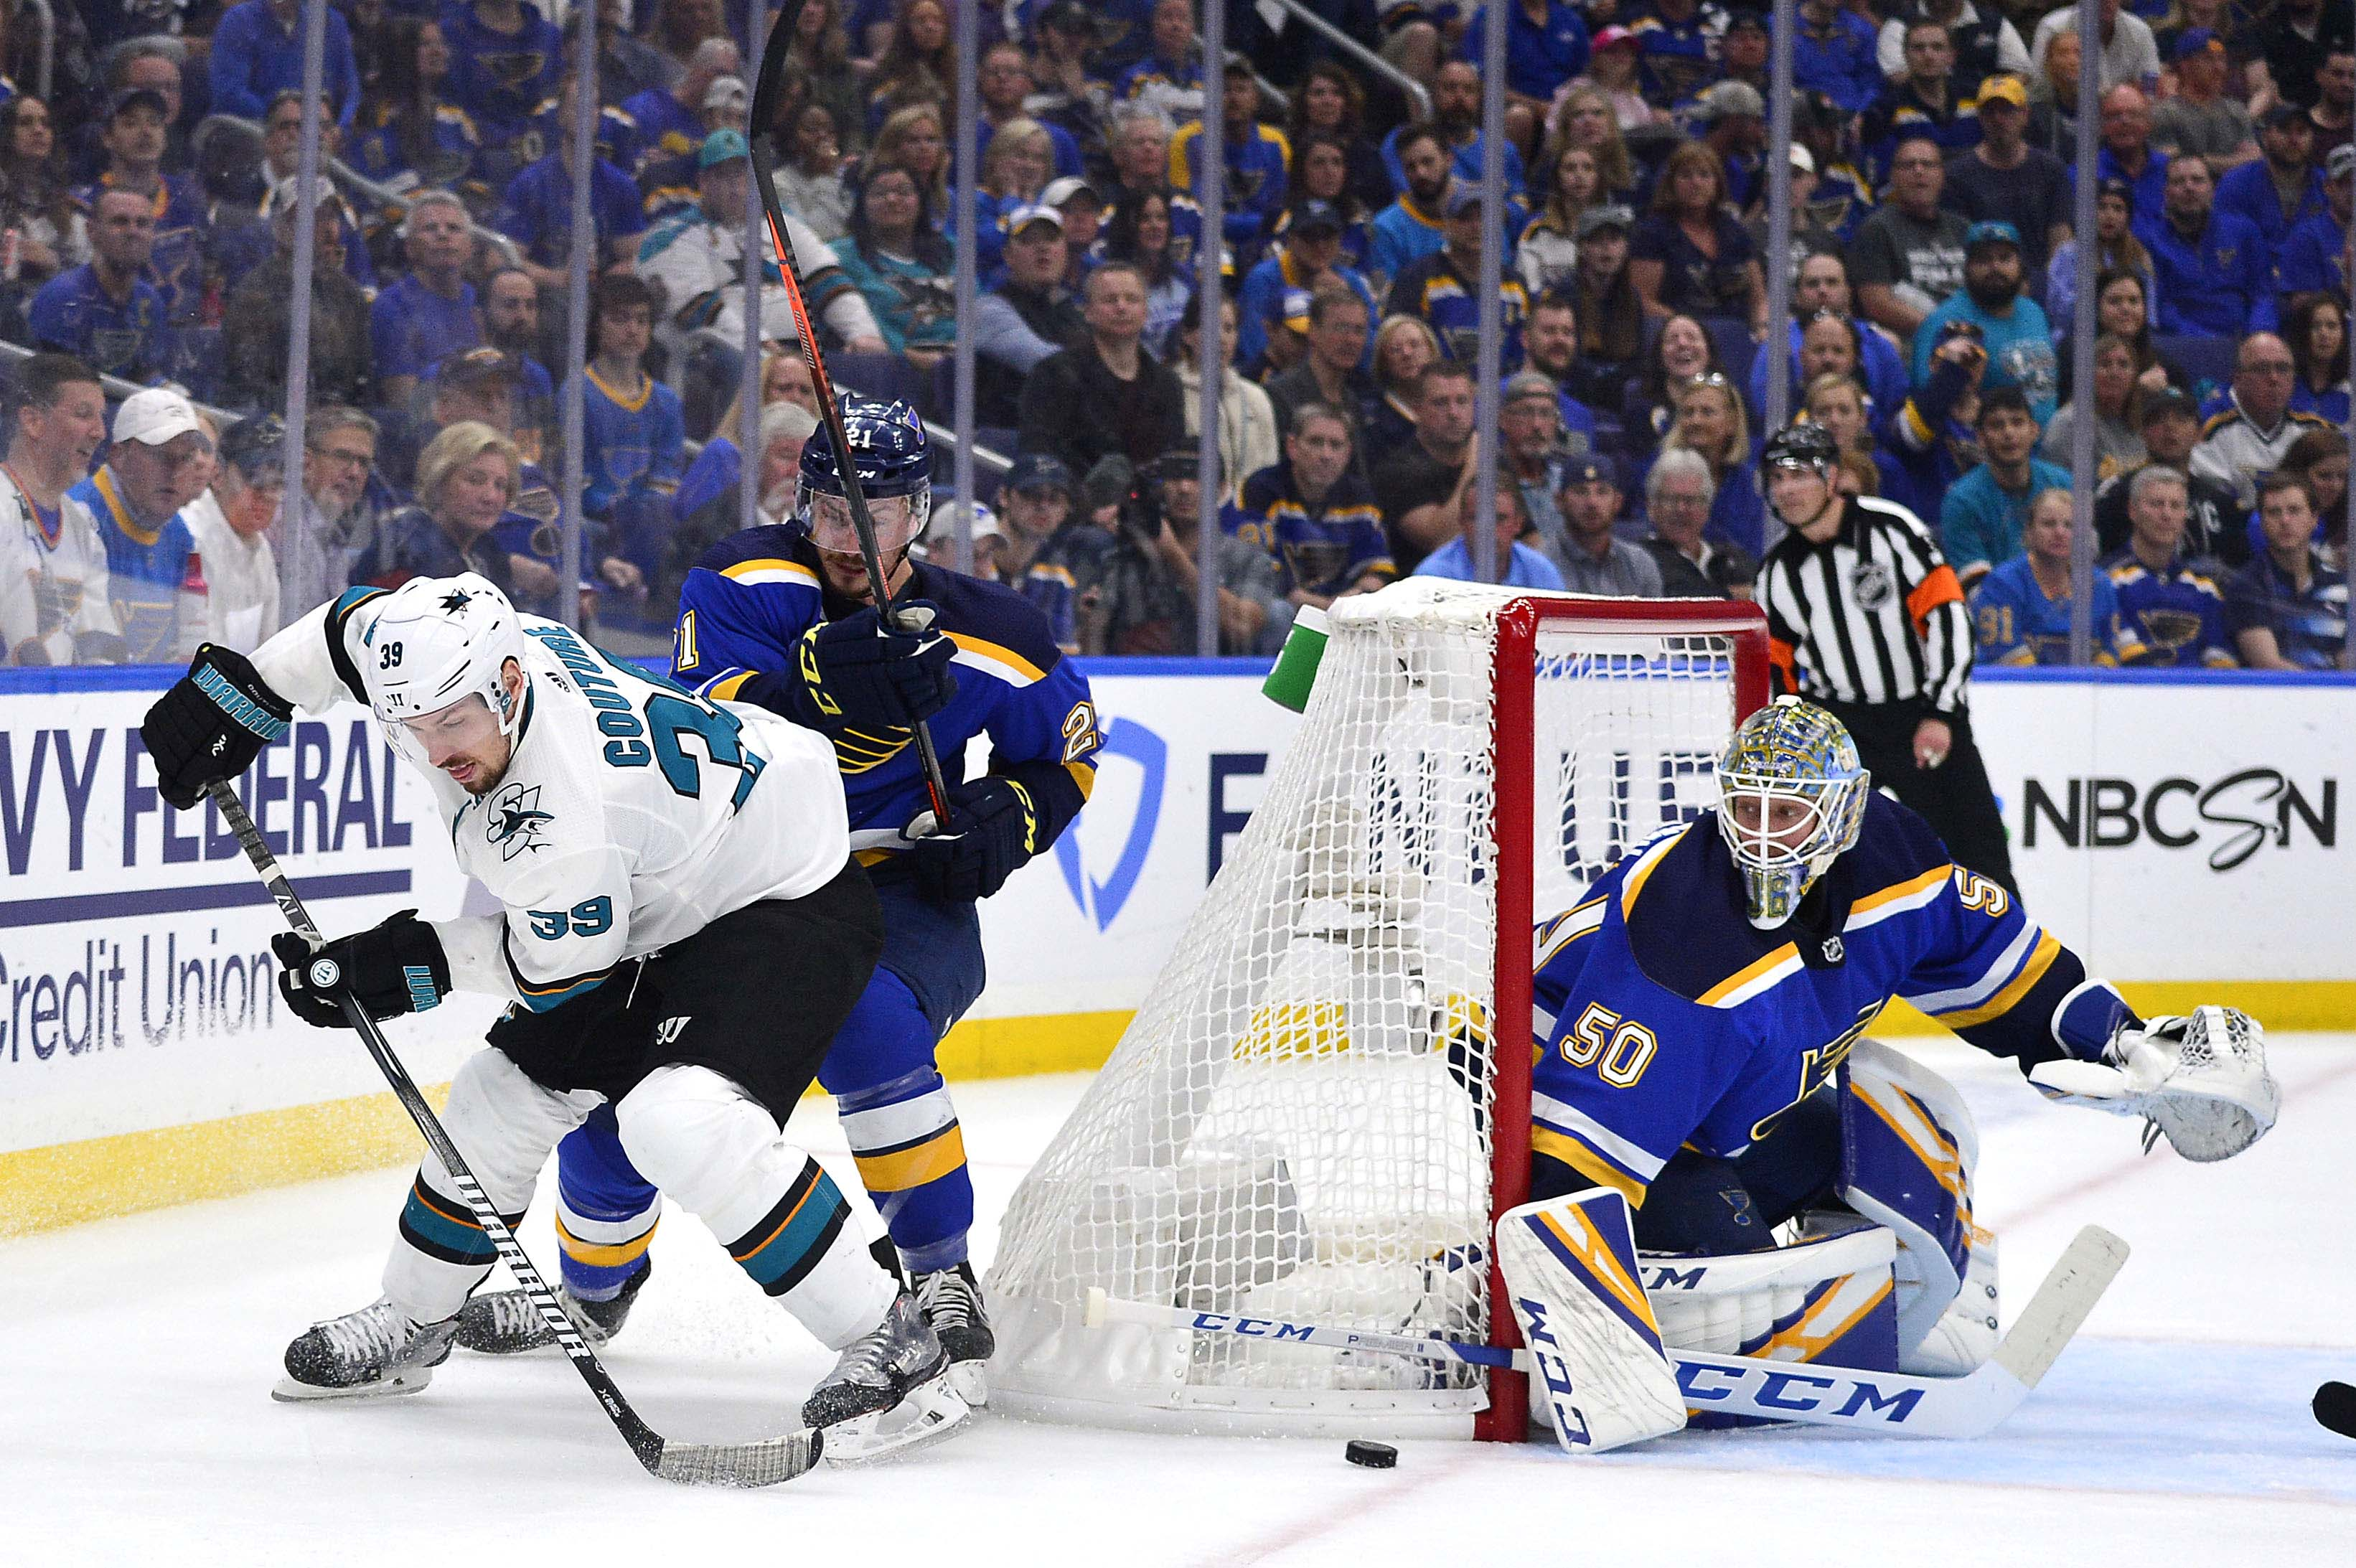 May 17, 2019; St. Louis, MO, USA; San Jose Sharks center Logan Couture (39) handles the puck as St. Louis Blues goaltender Jordan Binnington (50) and center Tyler Bozak (21) defend during the first period in game four of the Western Conference Final of th